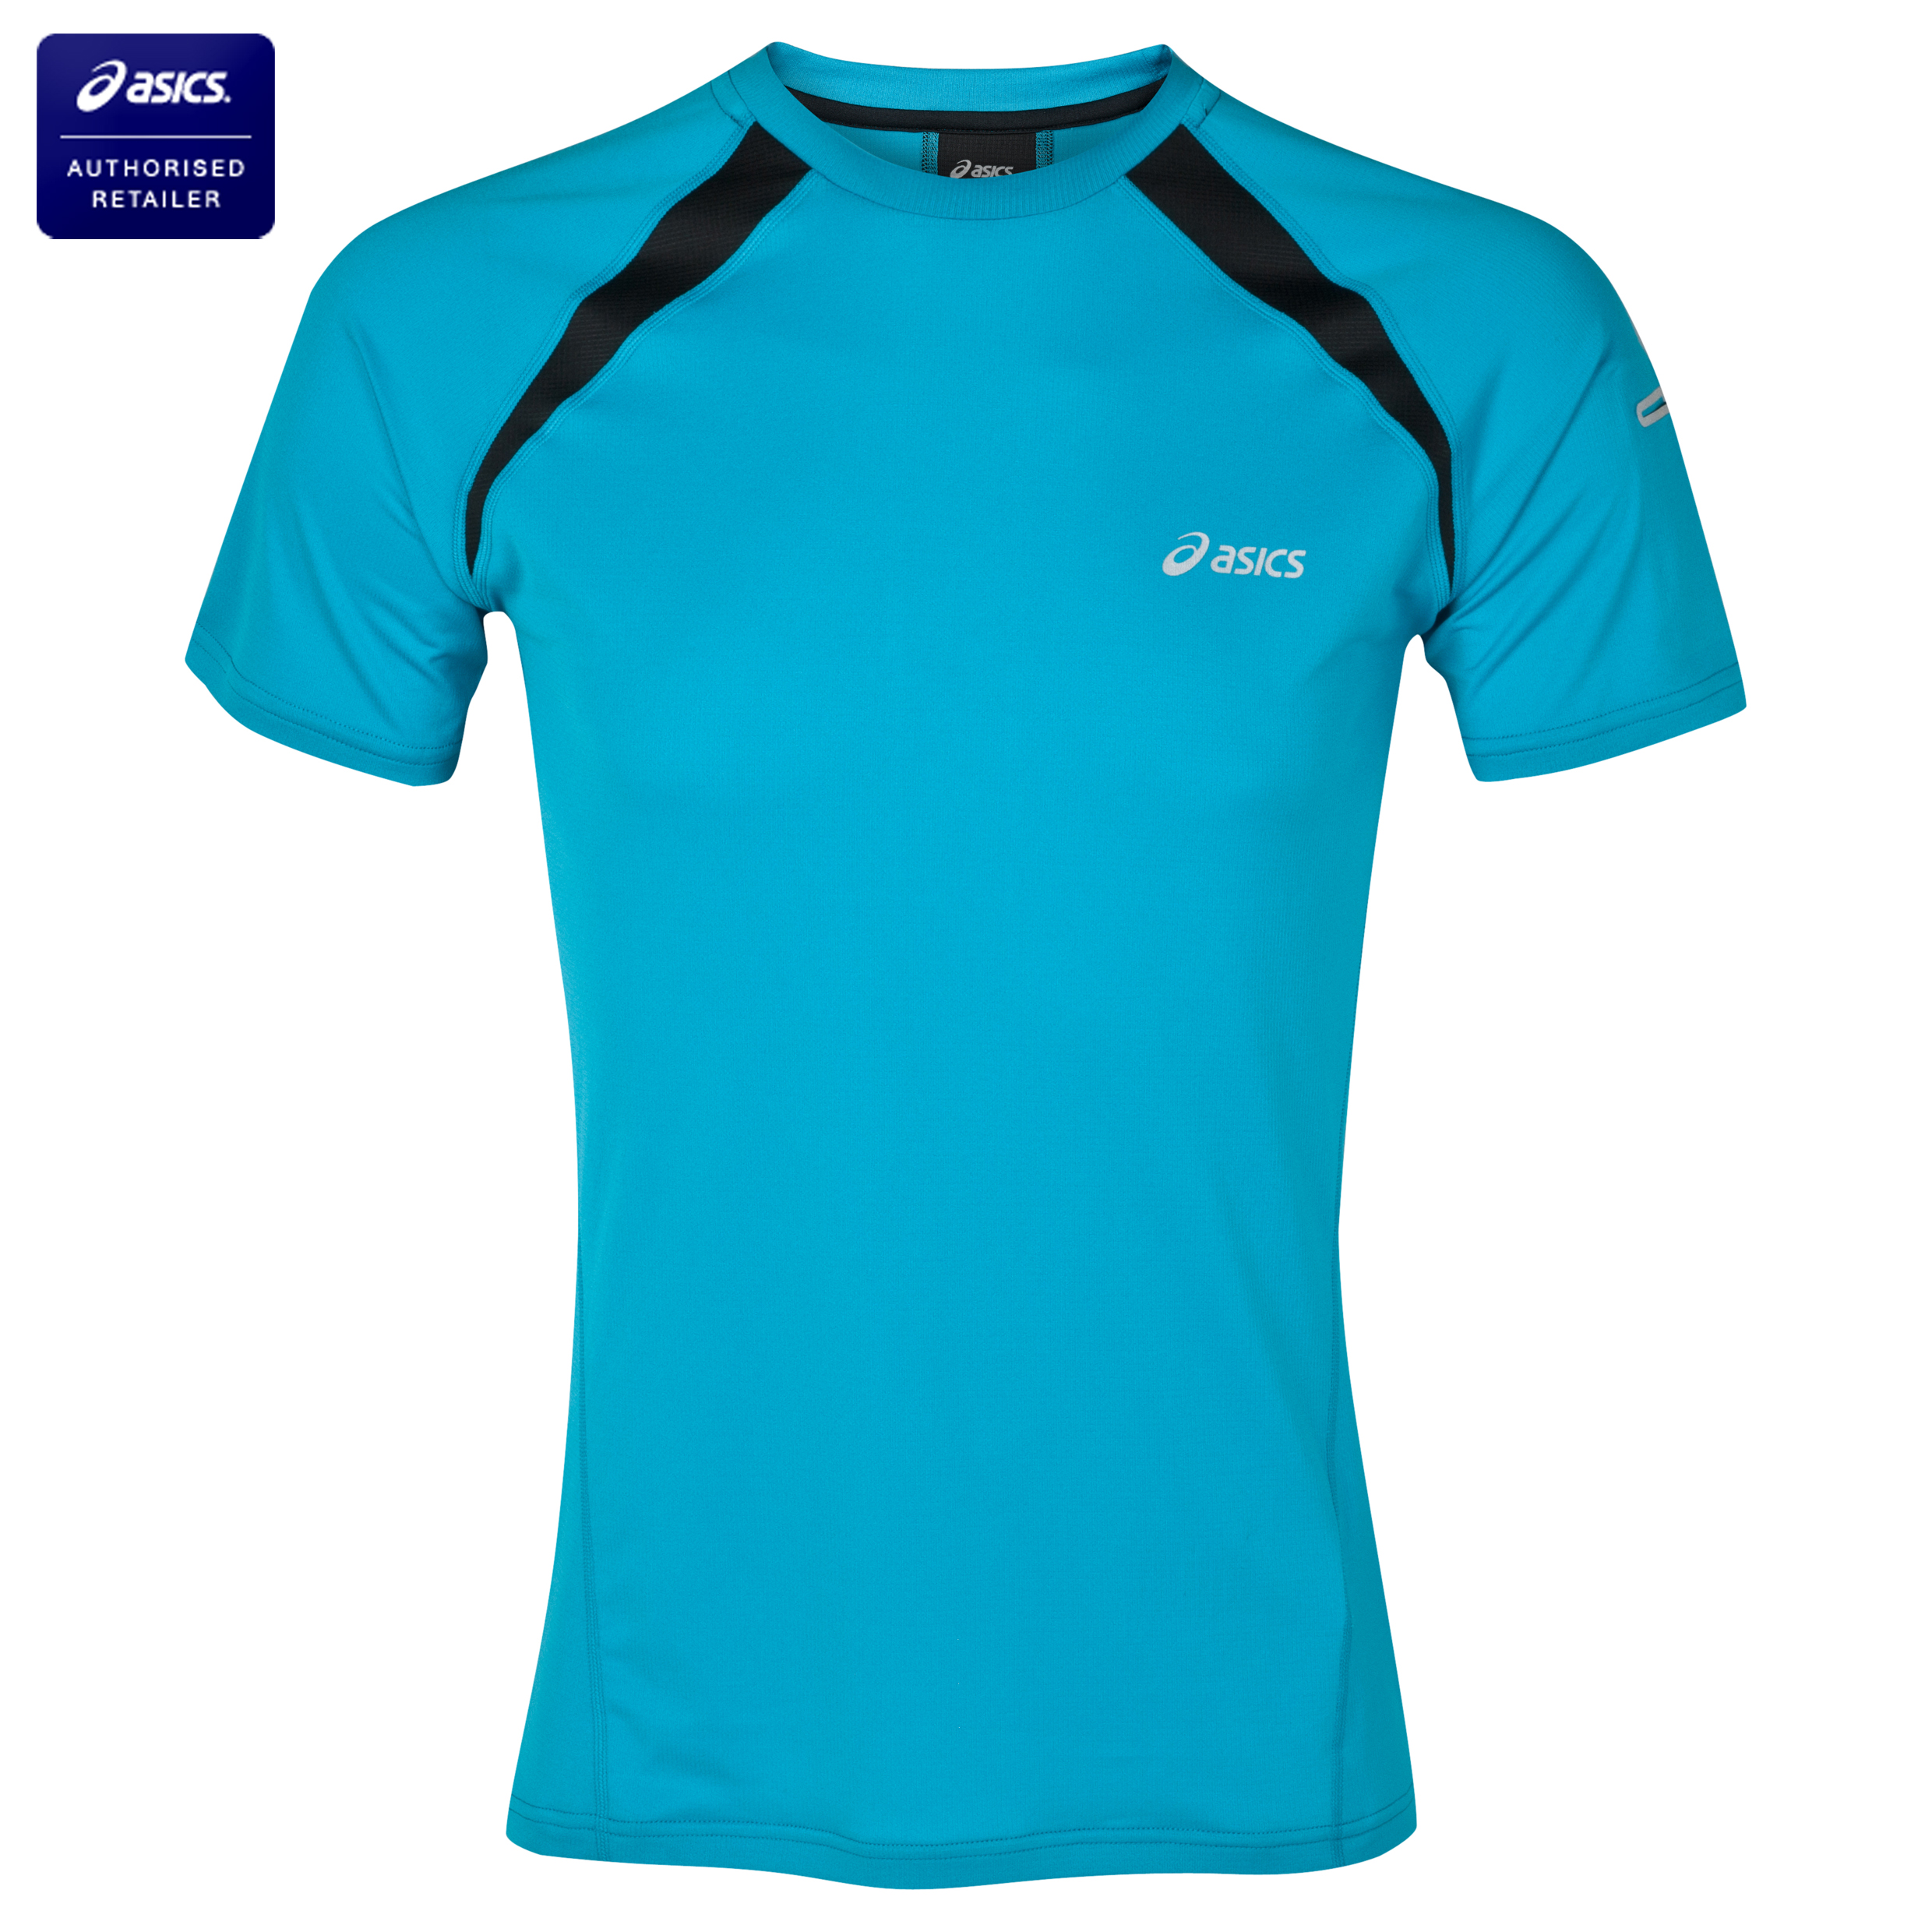 Asics Short Sleeve T-Shirt - Caribbean/Performance Black